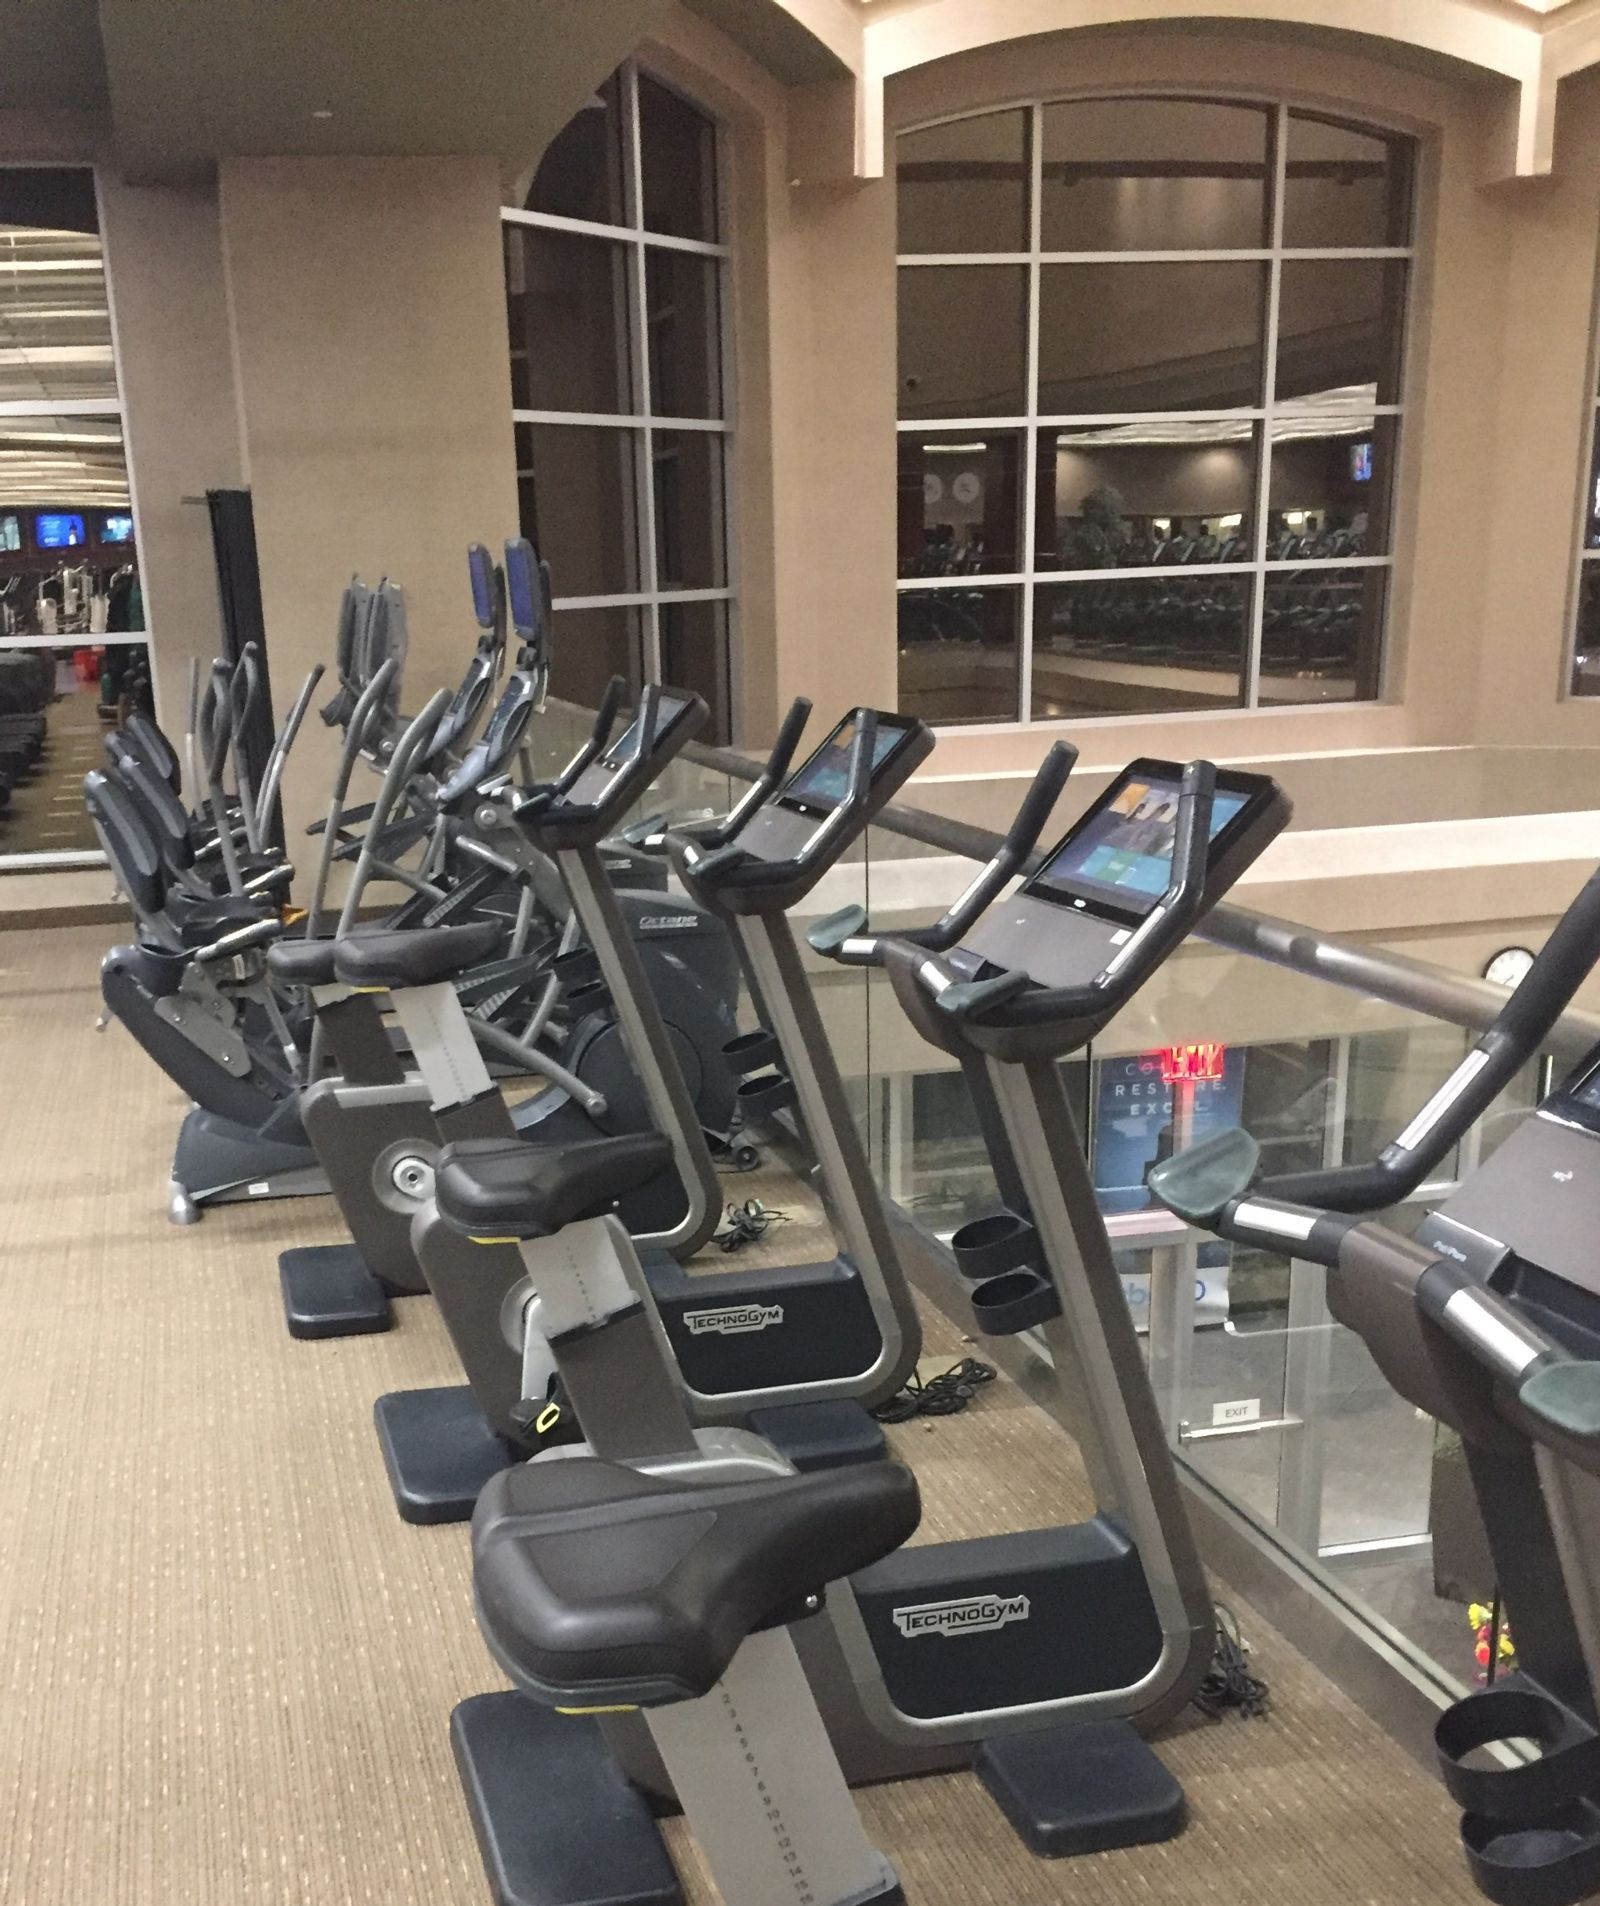 Winter is a great time to embrace alternative cardio options